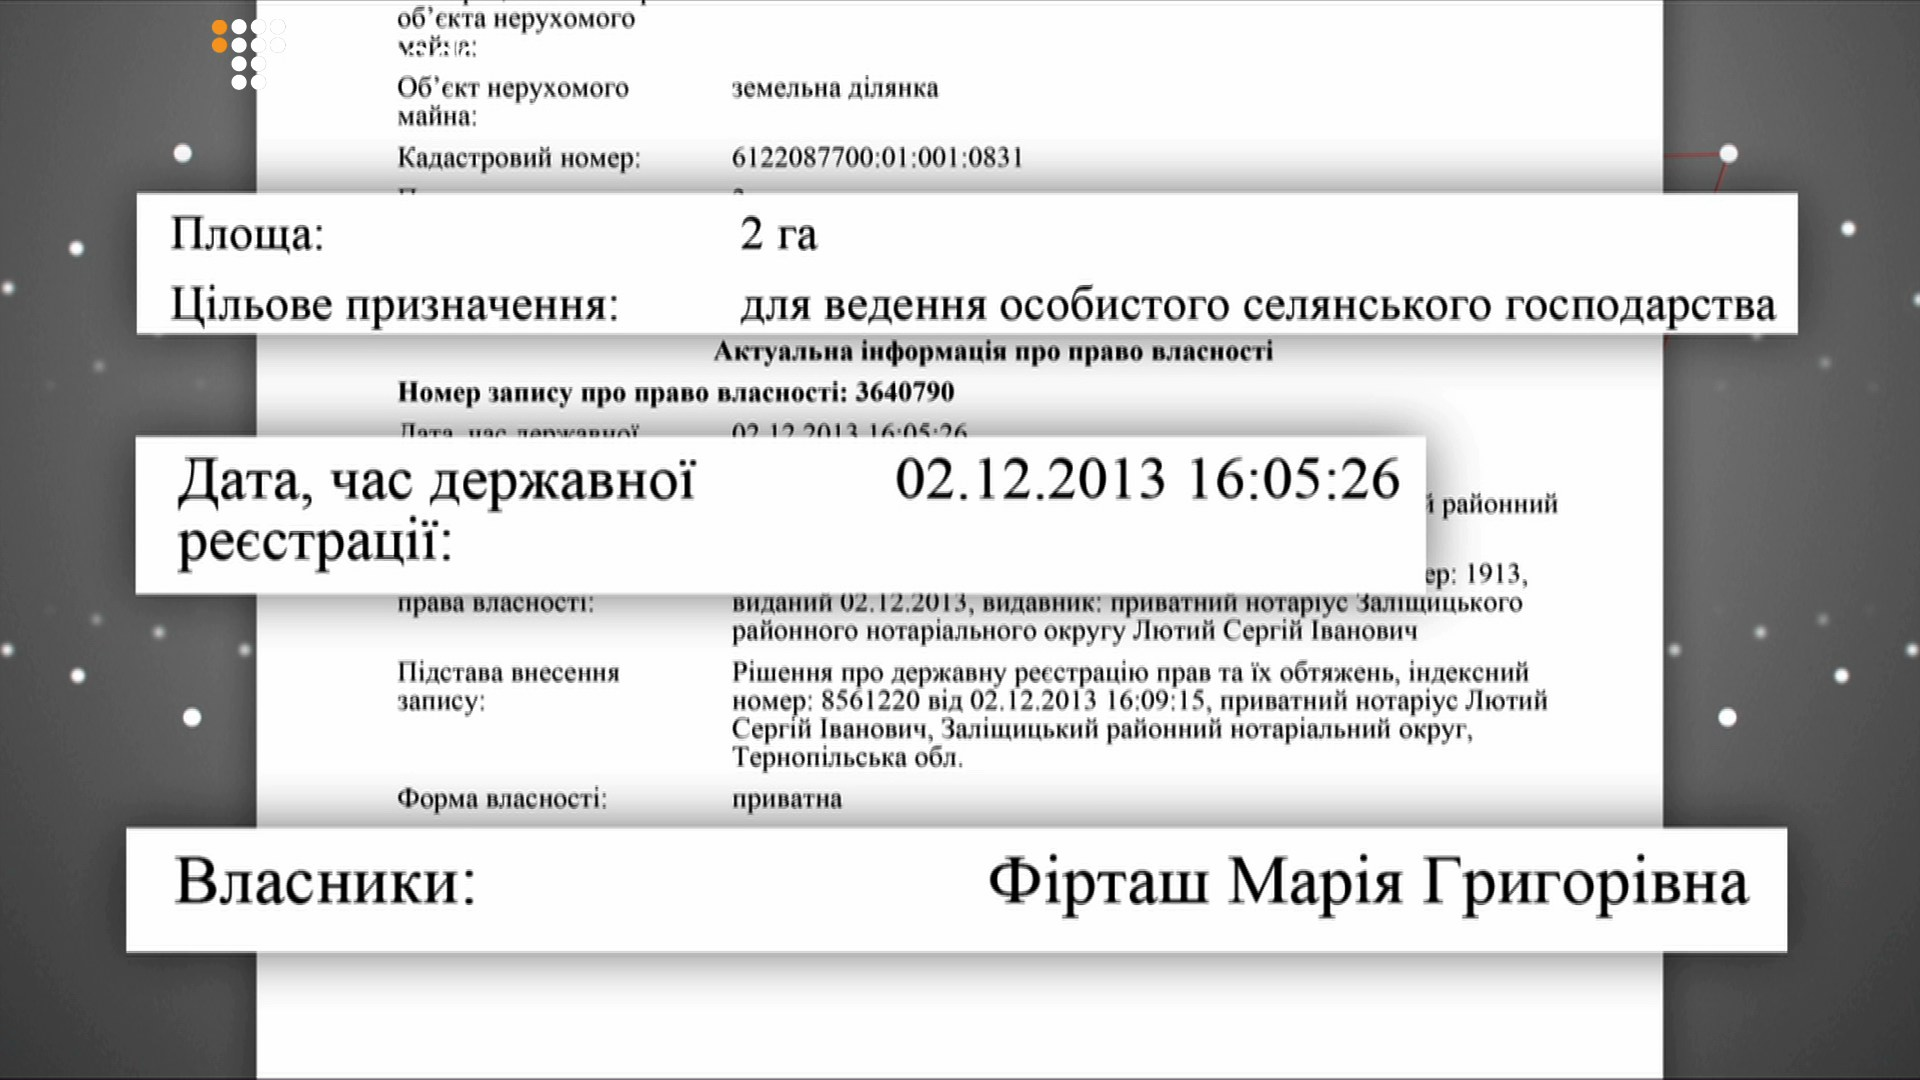 FIRTASH_screen 6